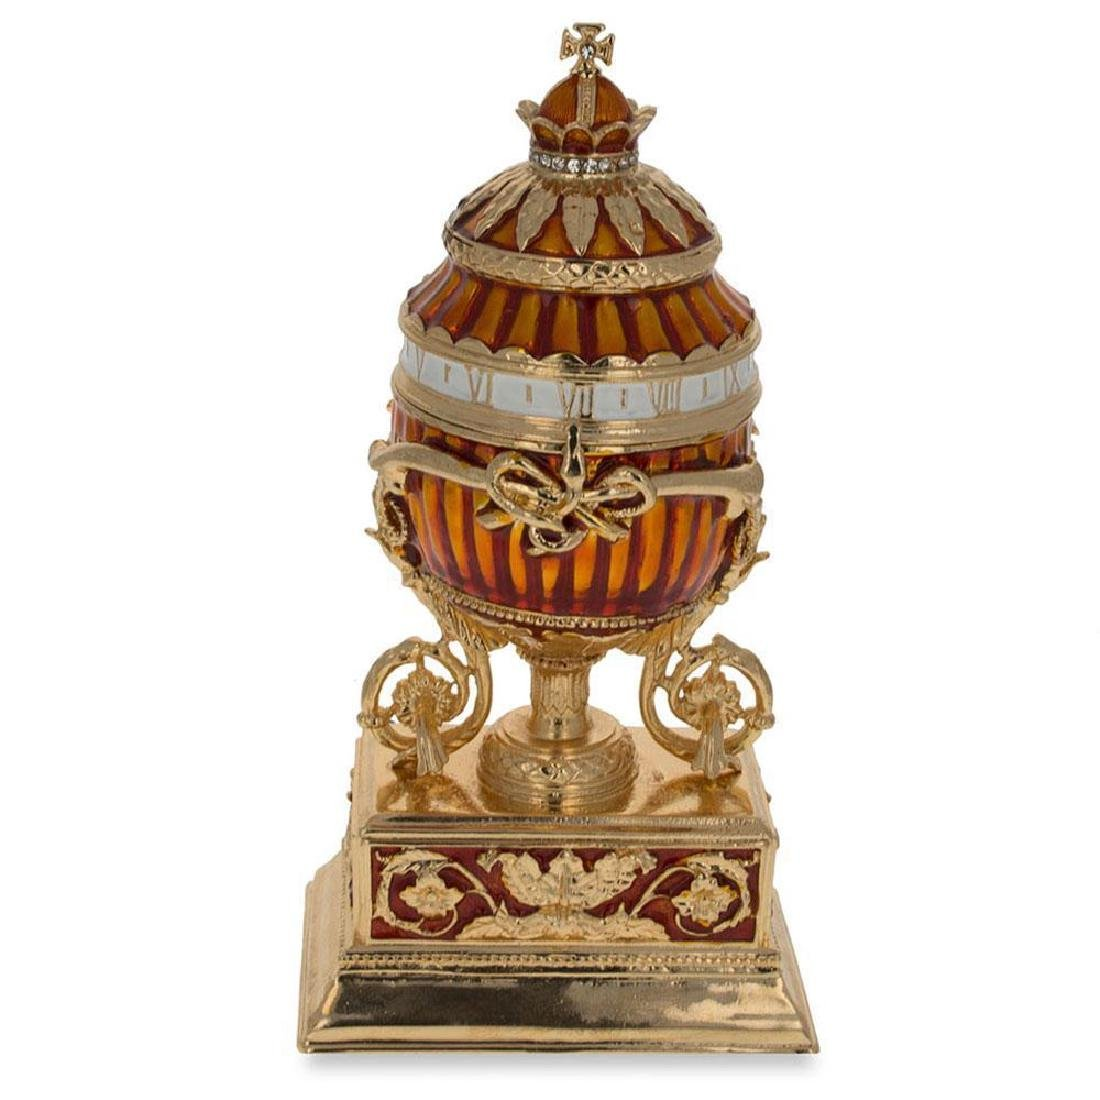 1899 Bouquet Of Lilies Clock Faberge Egg - 2